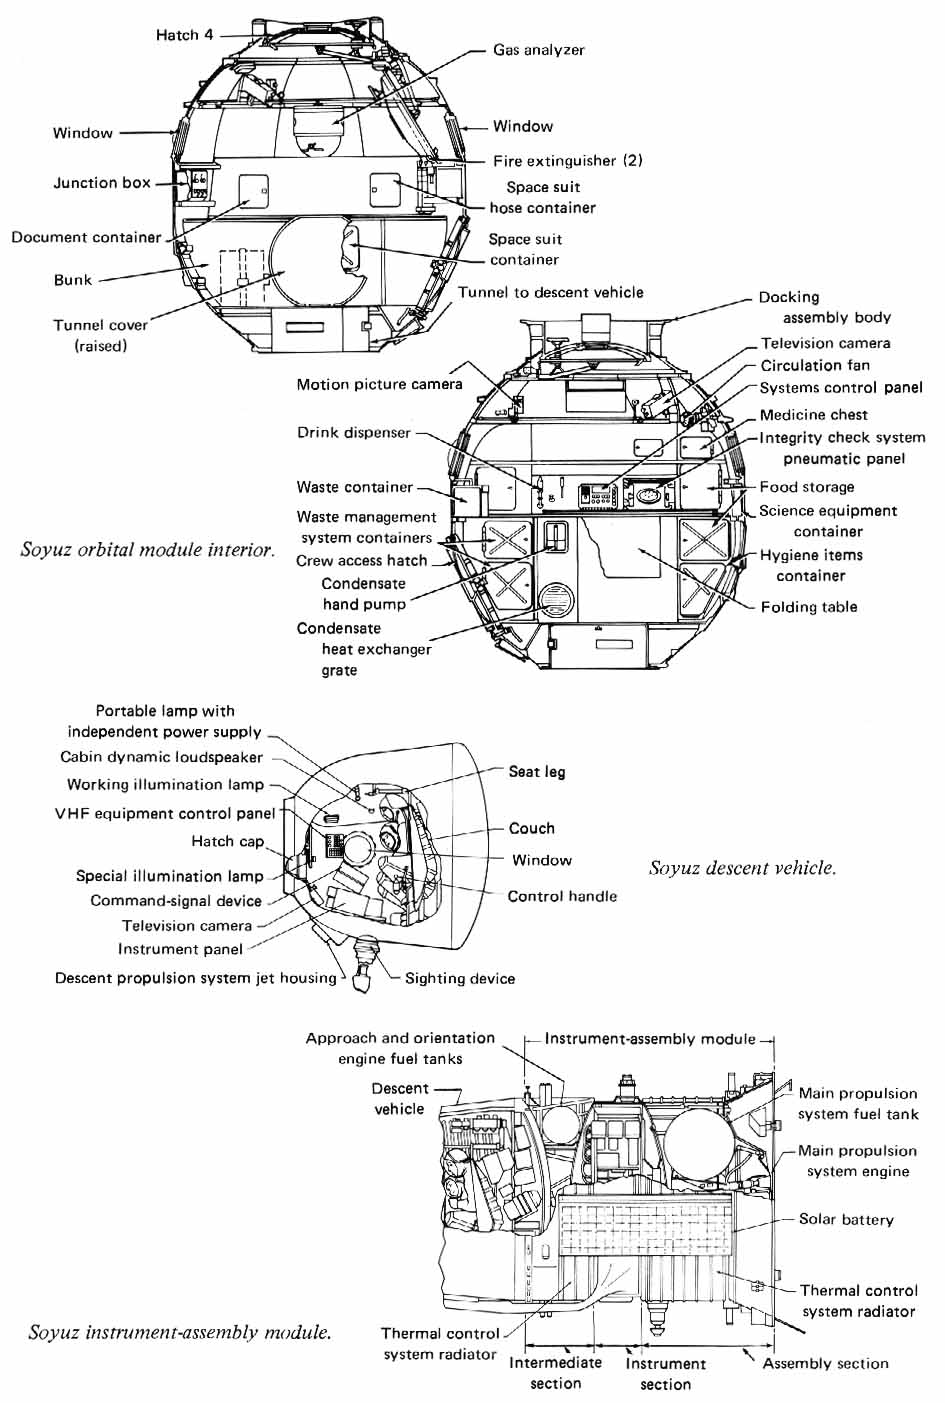 cross-sectional drawings of the Soyuz  Orbital Module, Descent vehicle and instrument-assembly  module